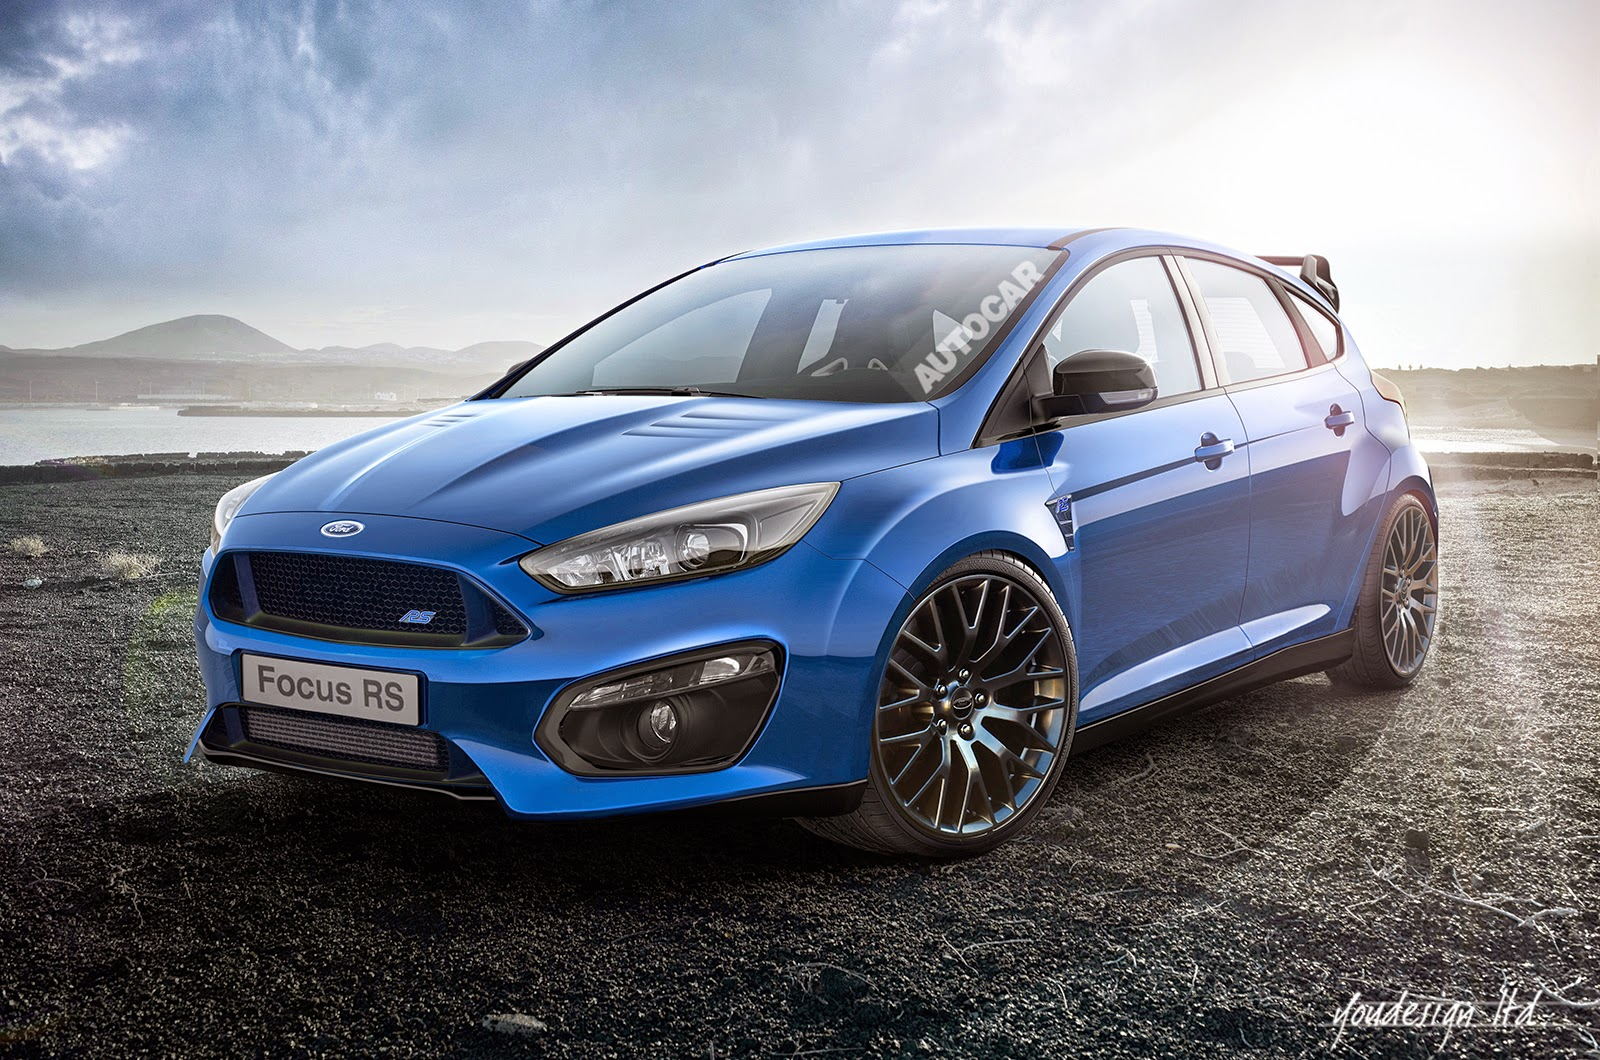 New Ford Focus RS to Feature New Stability Control Technology